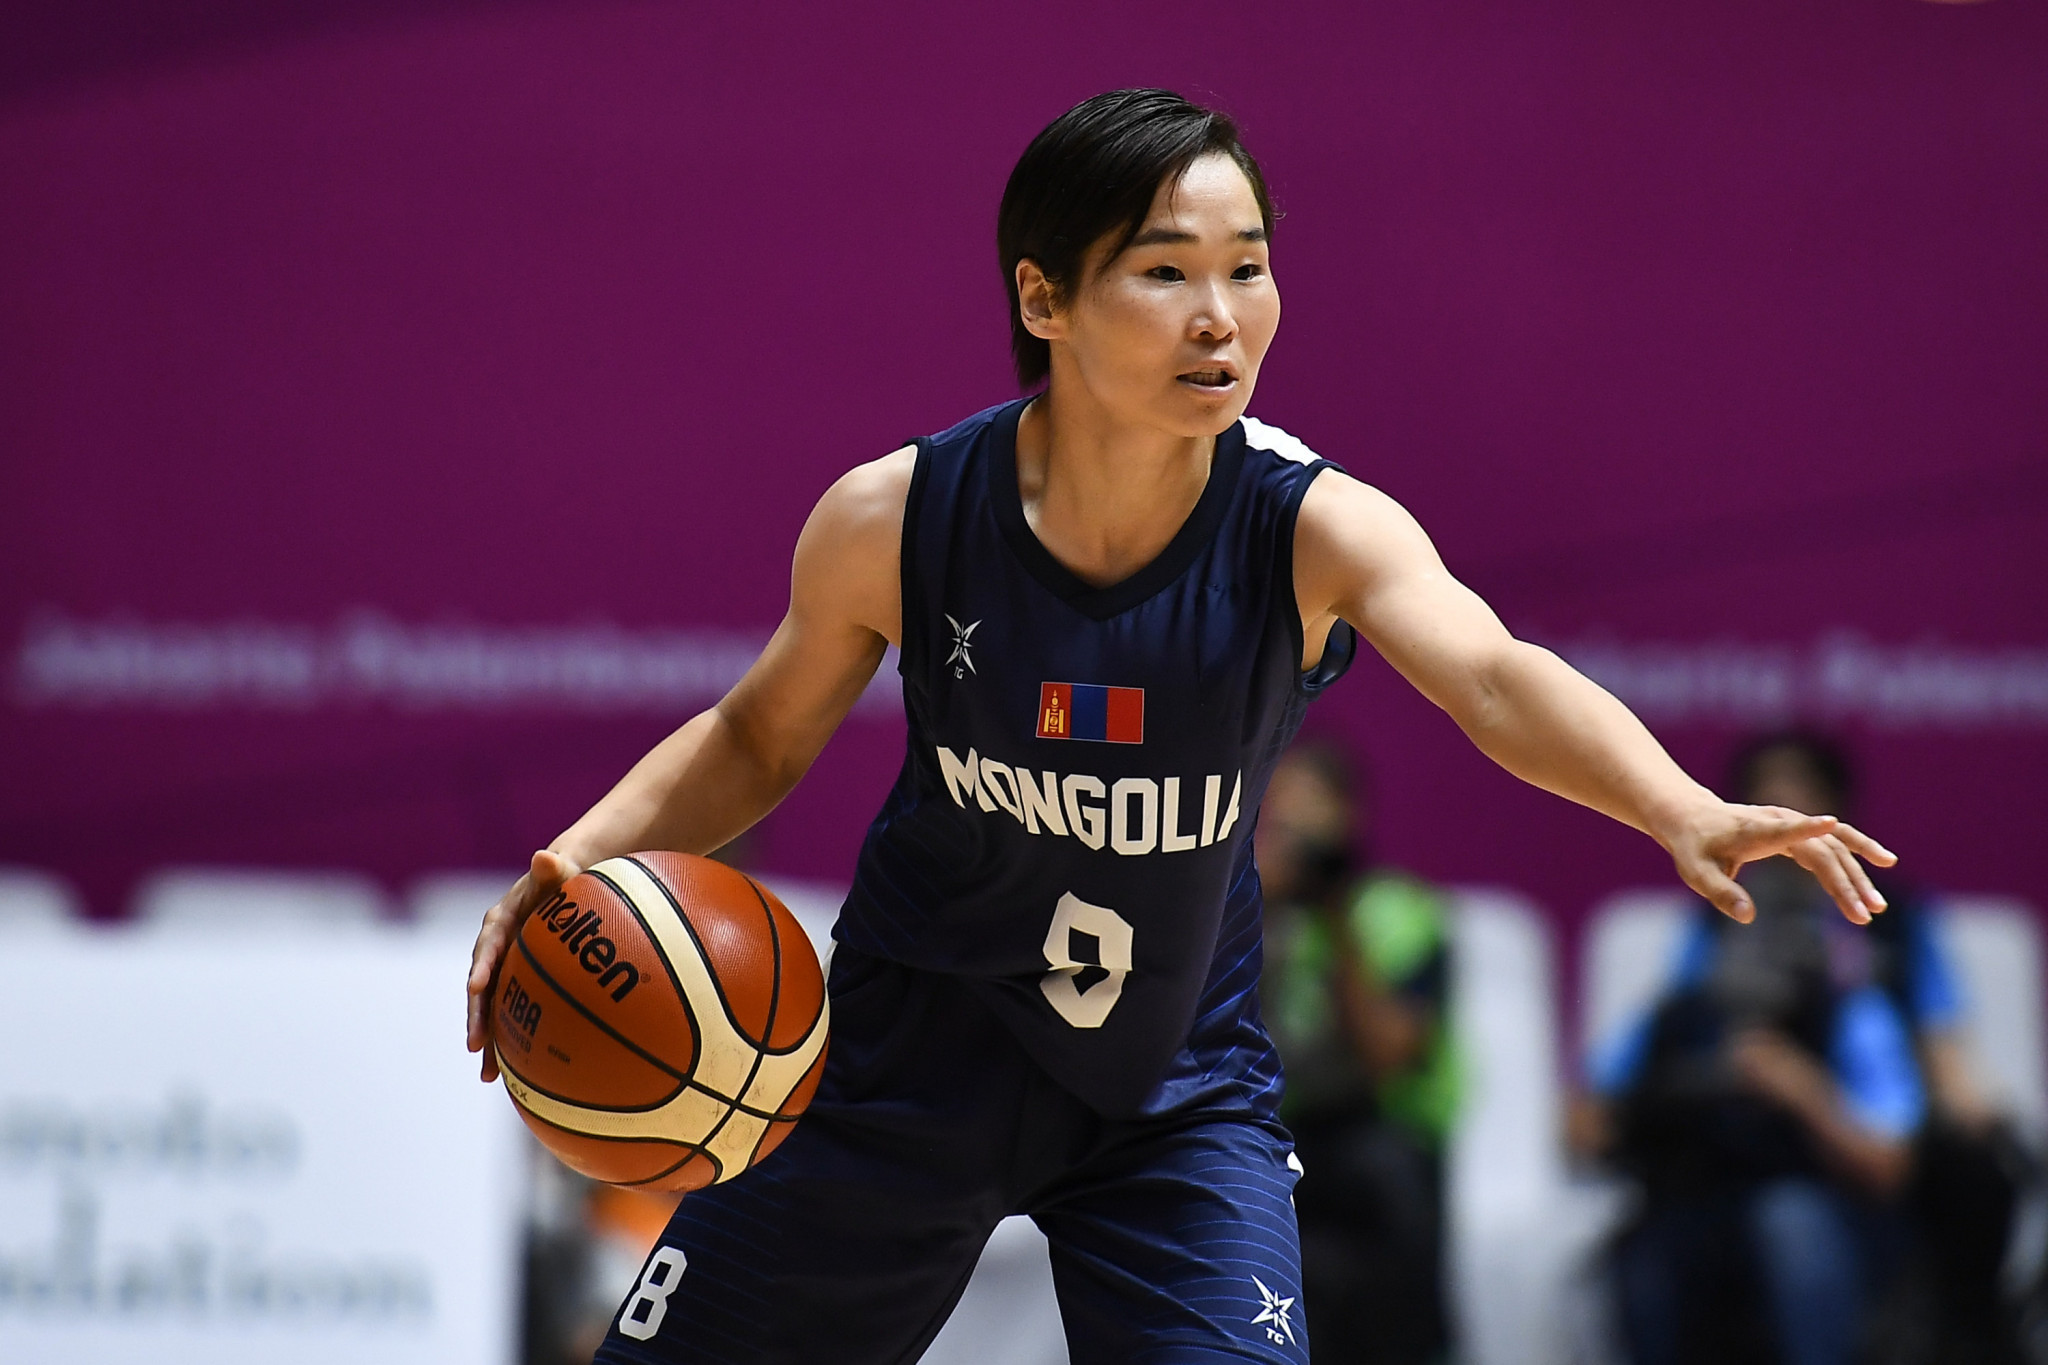 Mongolia's women's 3x3 basketball team has qualified for the Tokyo 2020 Olympic Games ©Getty Images